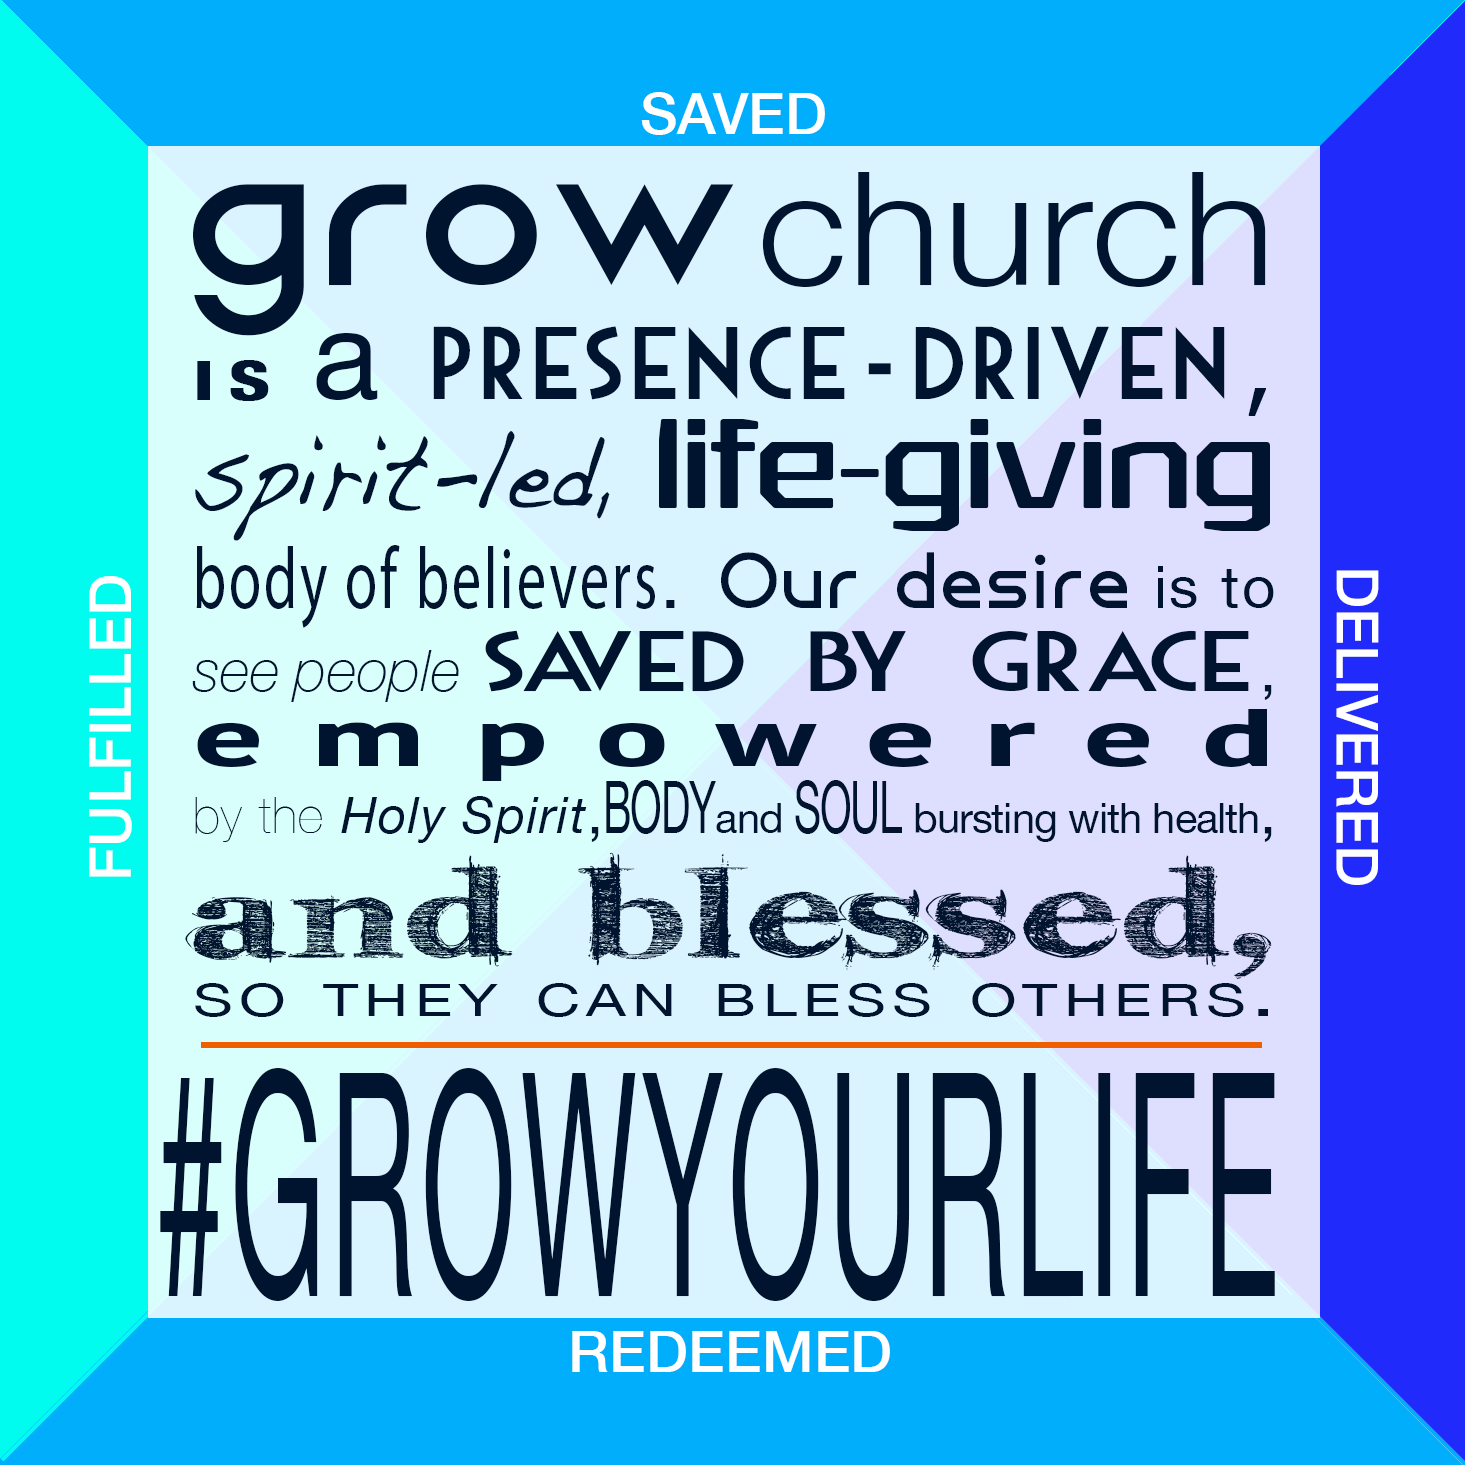 growchurch flyer back